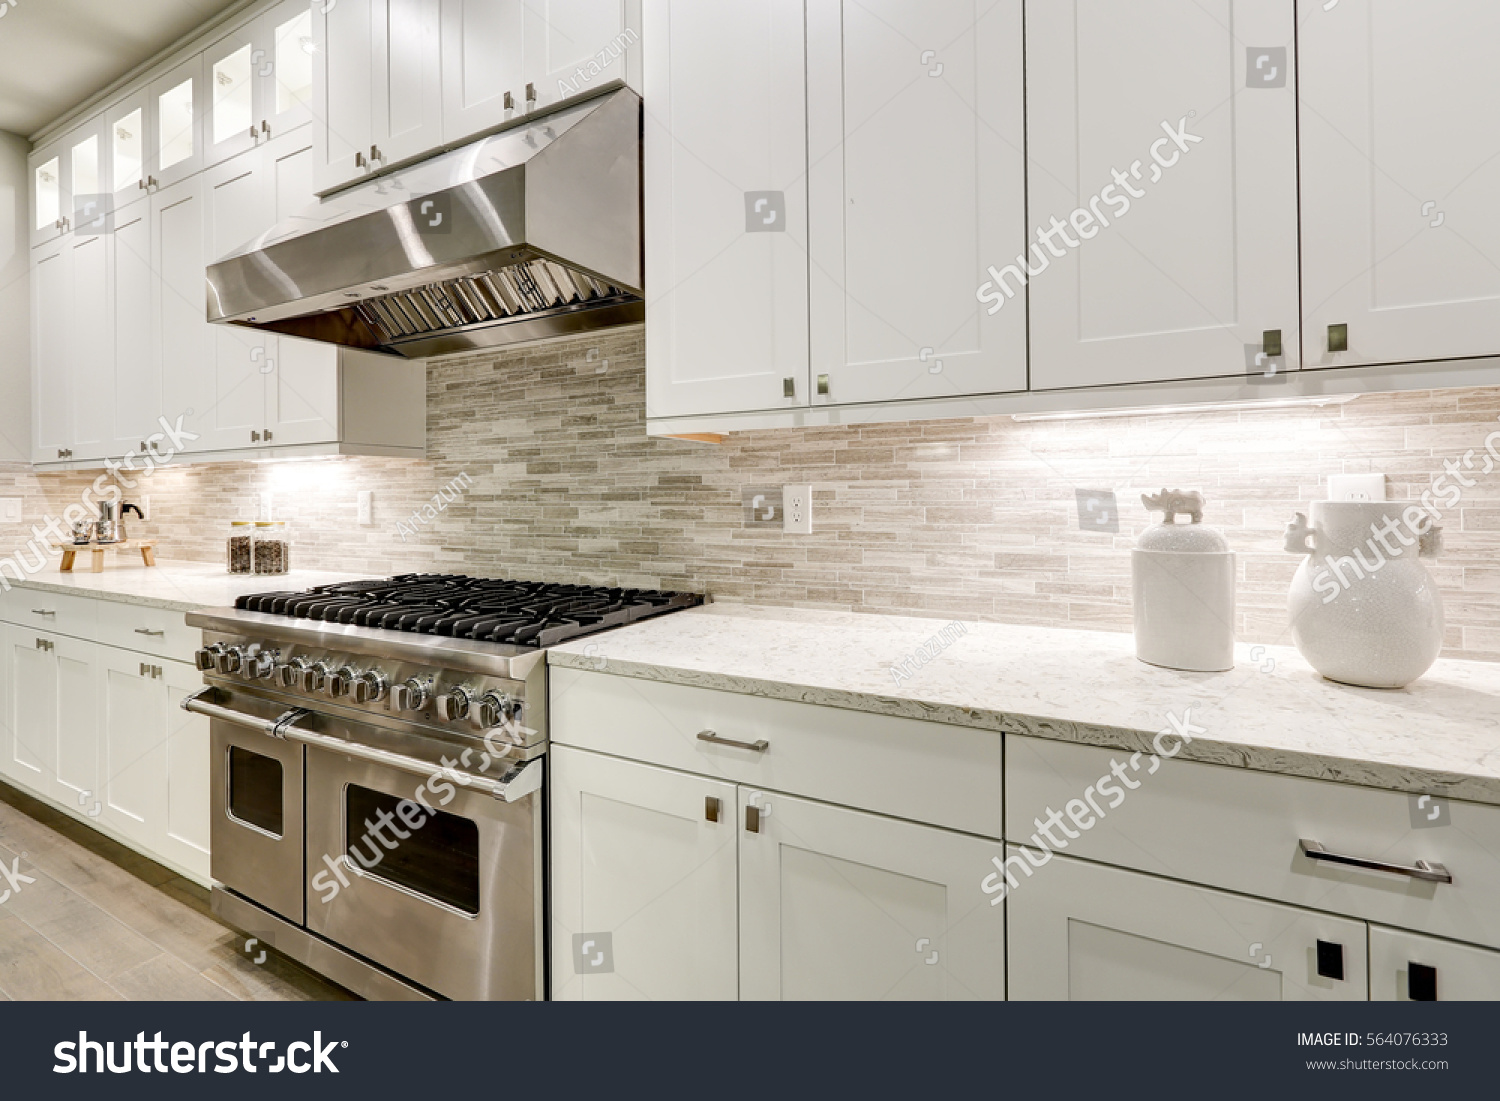 Gourmet Kitchen Features White Shaker Cabinets With Marble Countertops  Paired With Stone Subway Tile Backsplash And